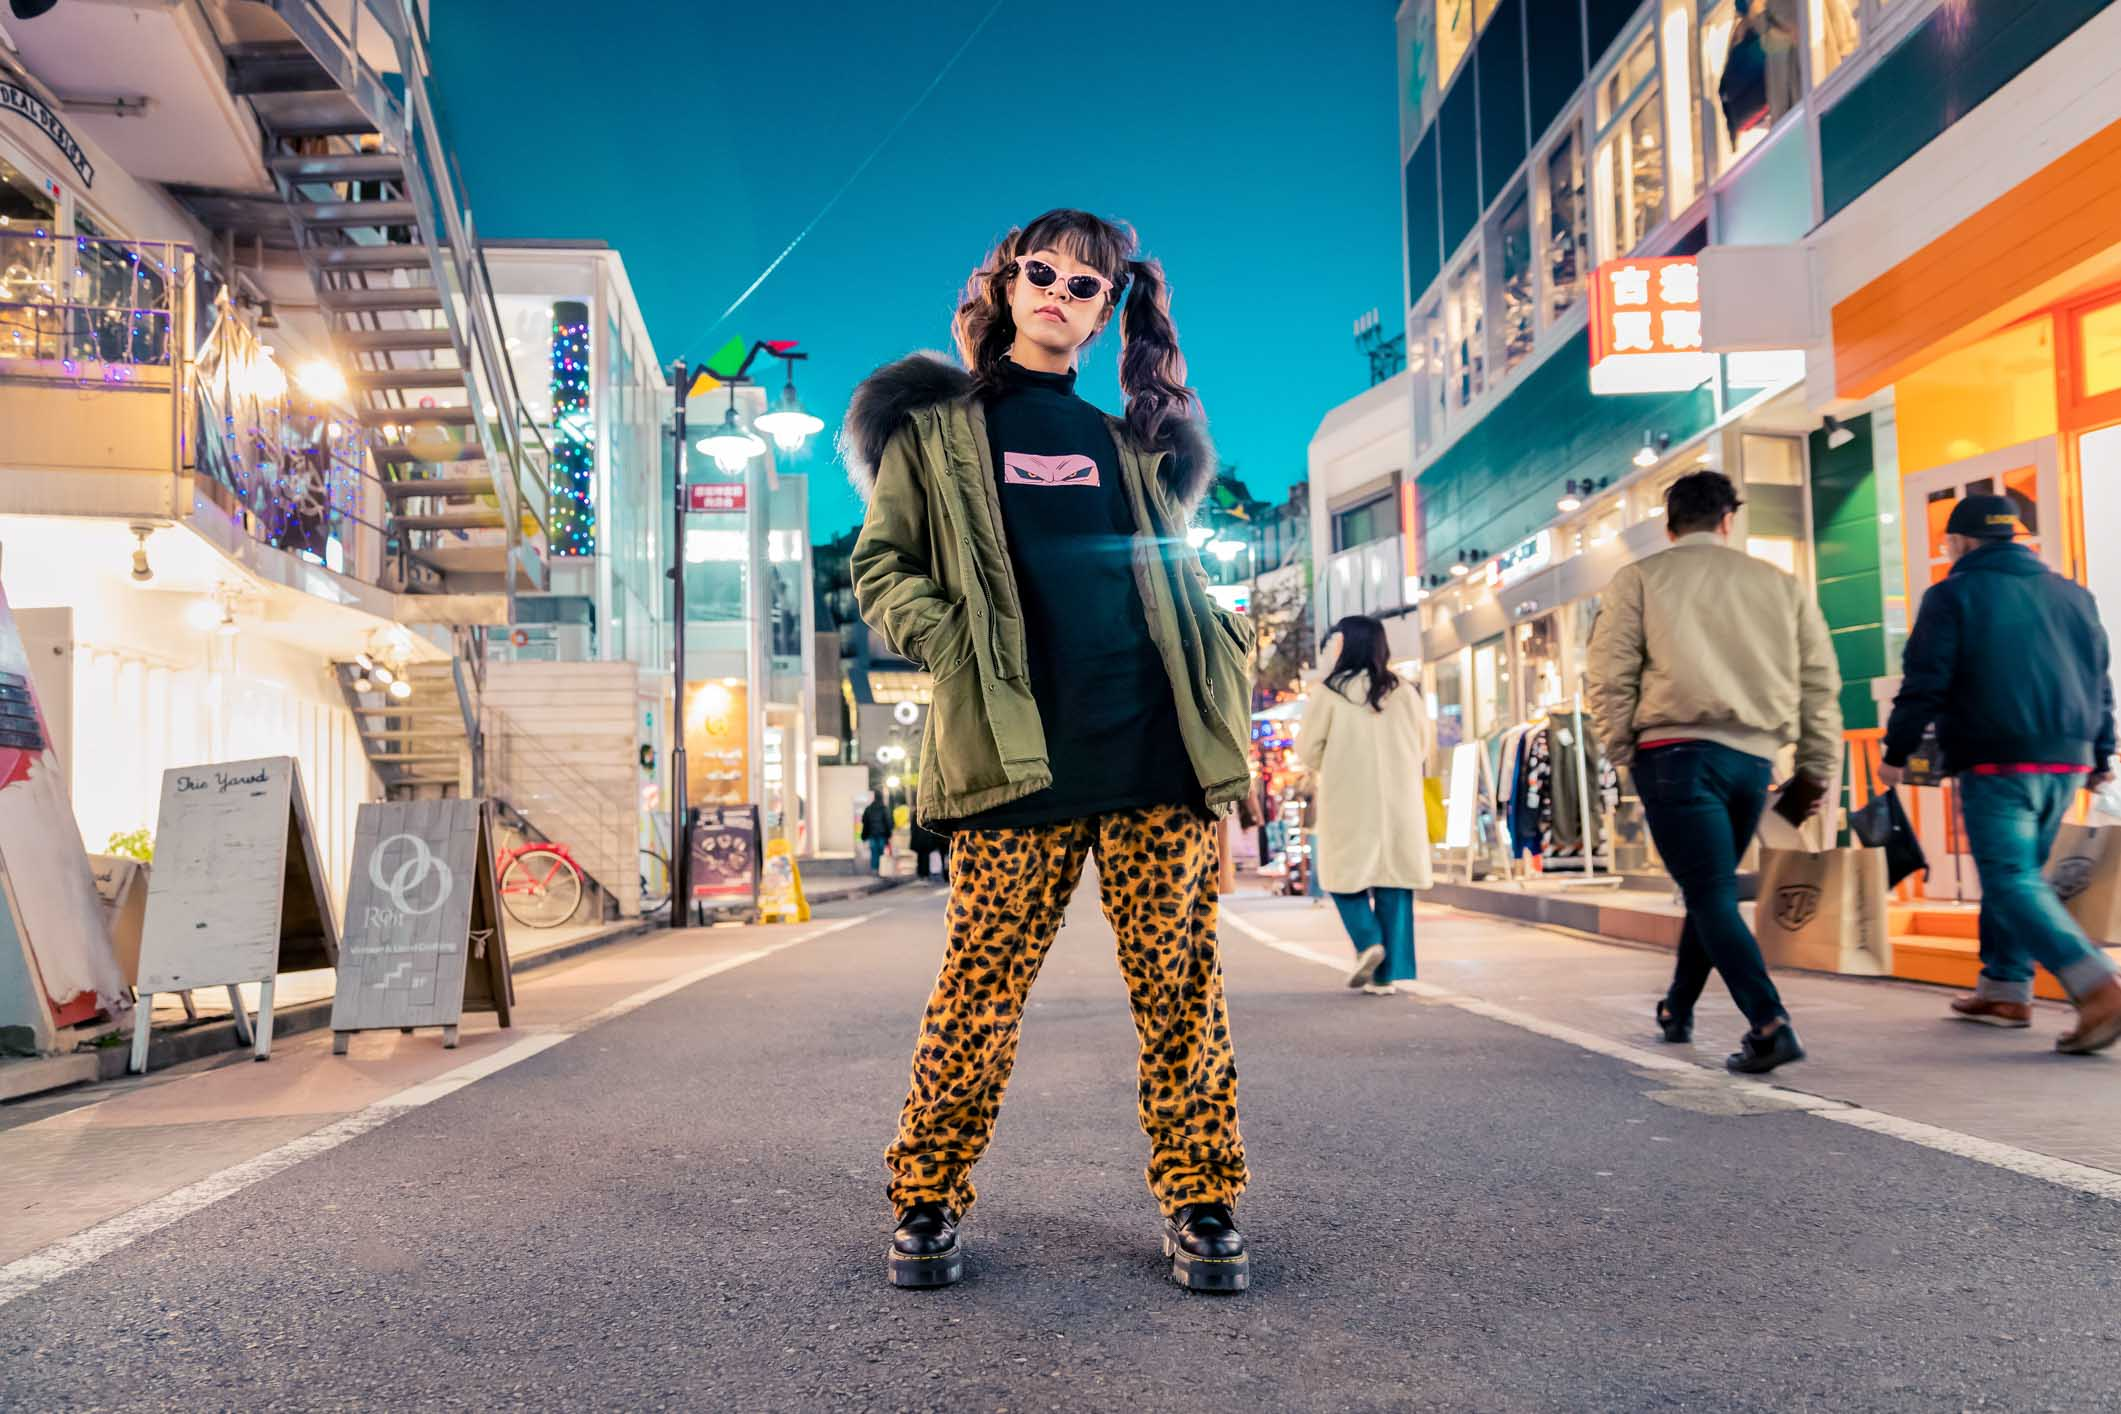 Harajuku Tokyo - A Complete Area Guide You Need To Read